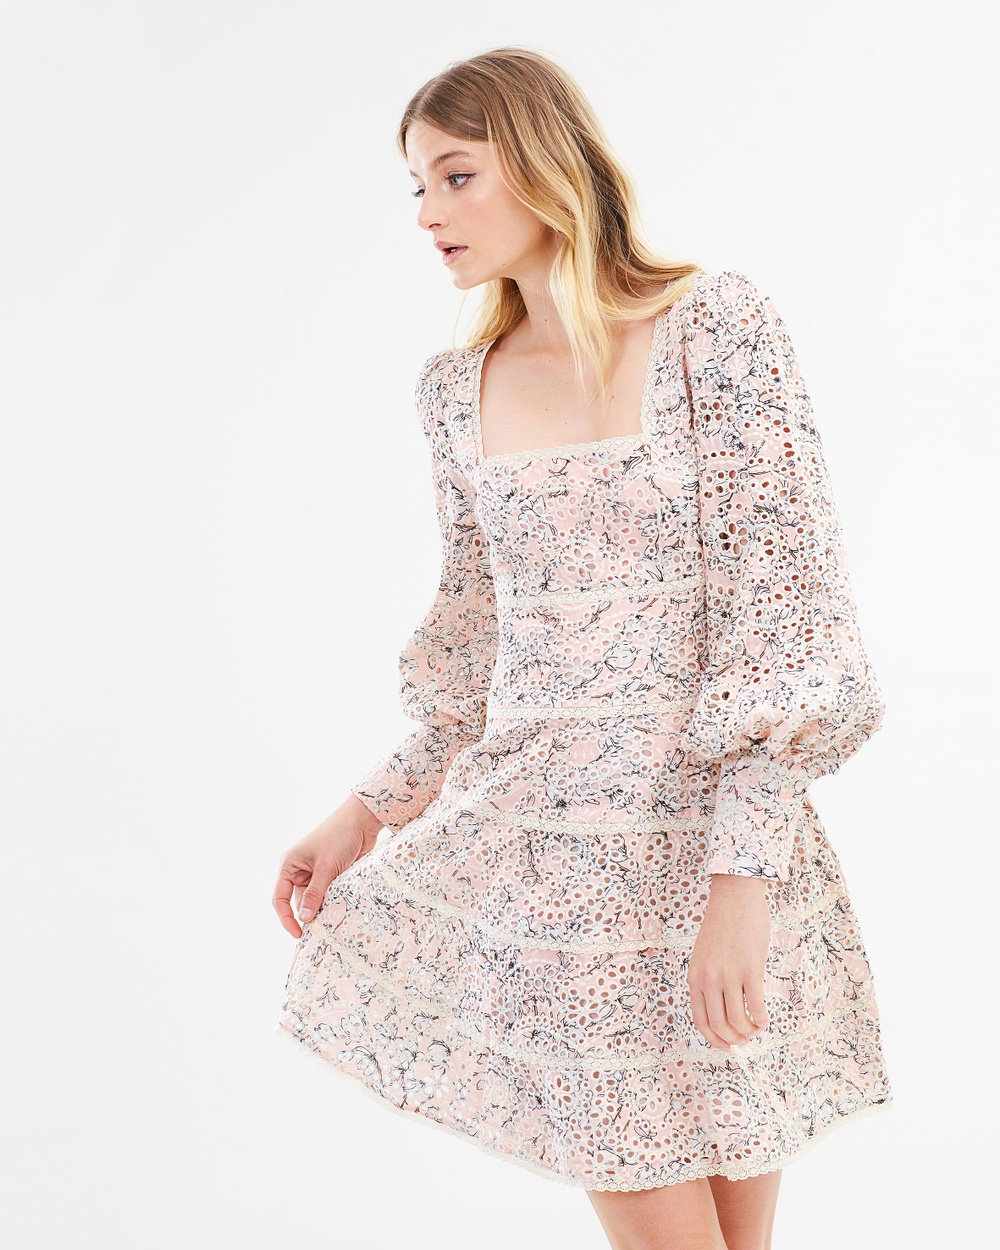 Ministry of Style Delilah Mini Dress Printed Dresses Delilah Print Delilah Mini Dress